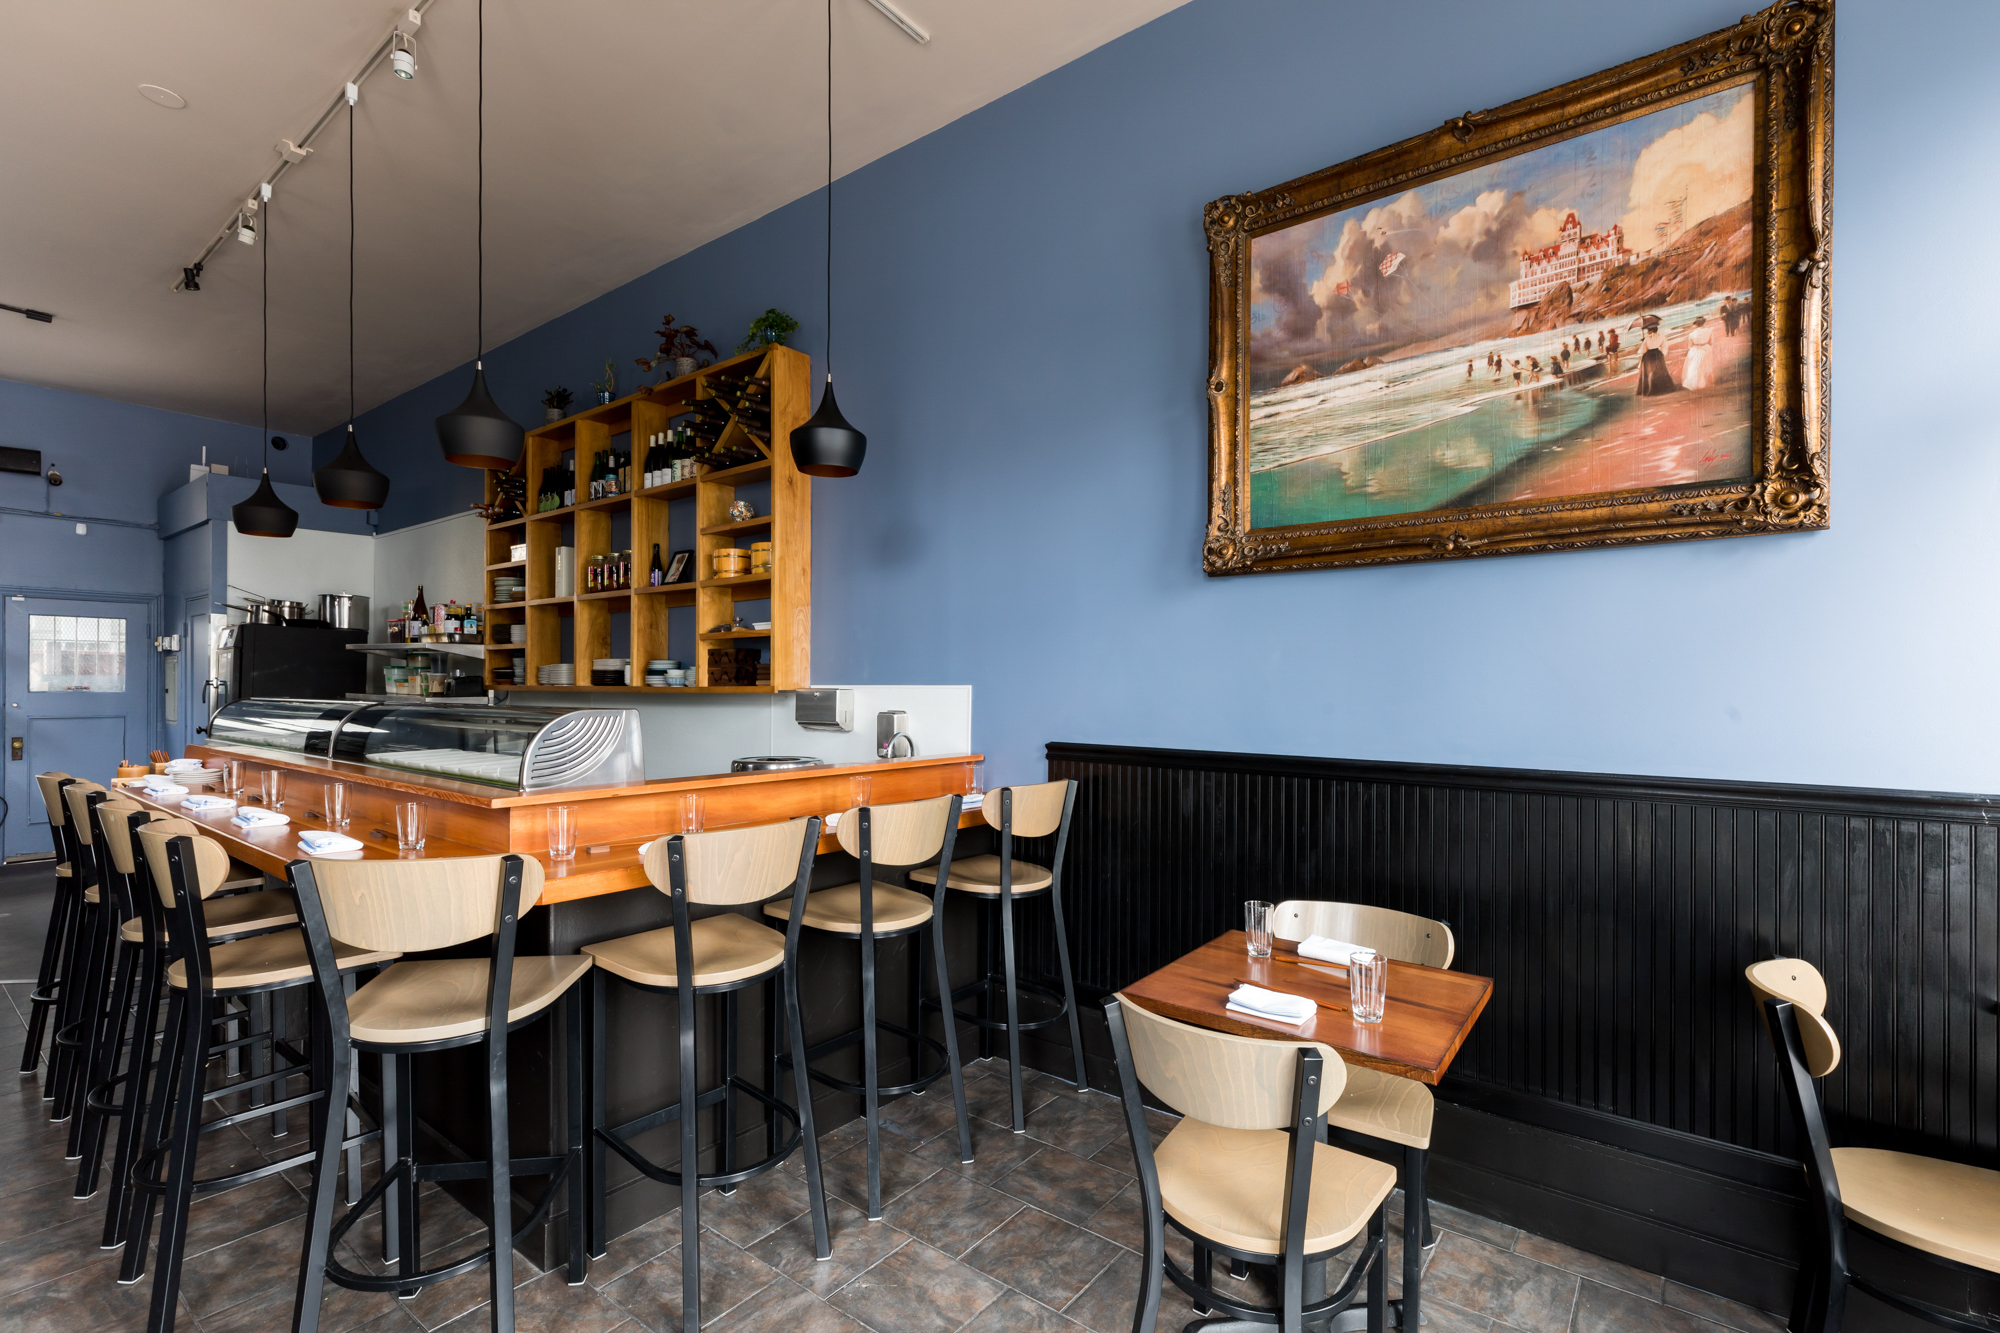 Inside Chisai Sushi Club, a small restaurant on Mission Street with blue walls and a warm wooden sushi bar with seats for 8 diners. A customer painting of Ocean Beach hang on one wall.